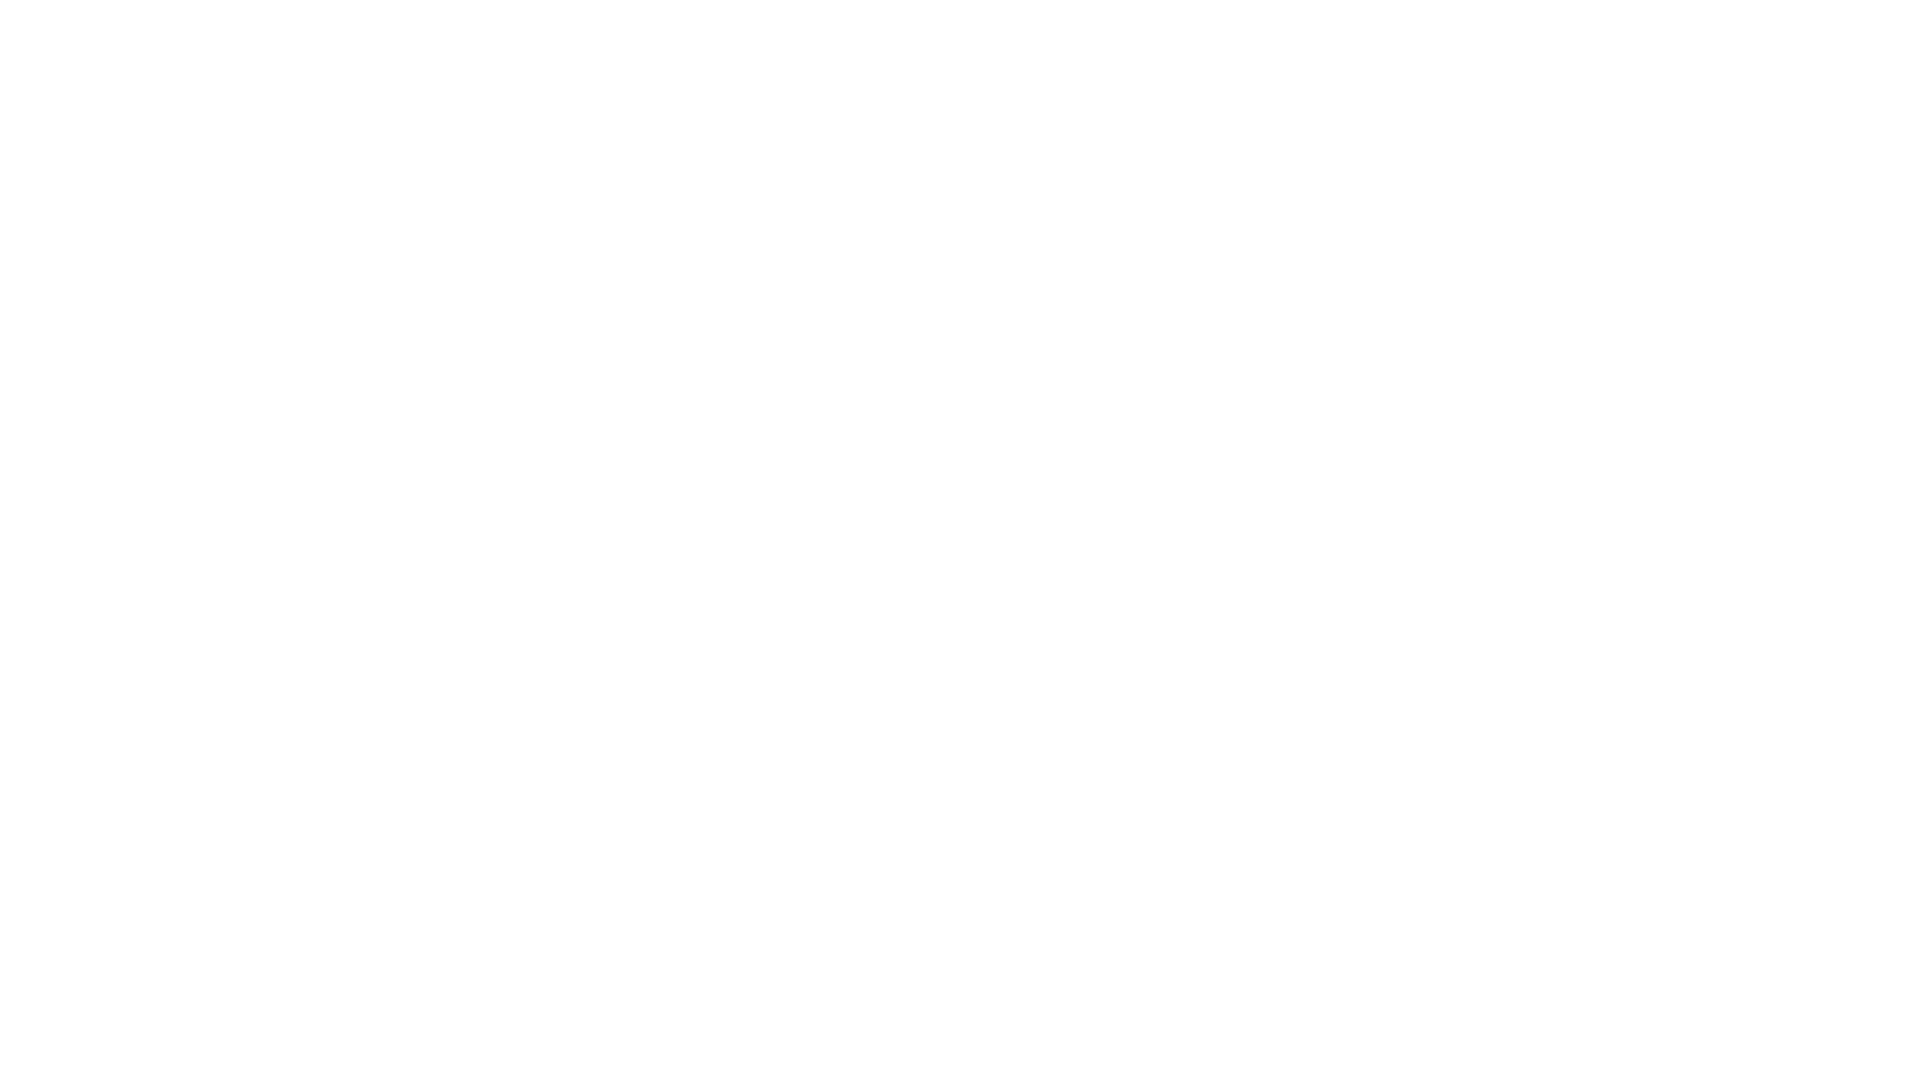 My Executive Room